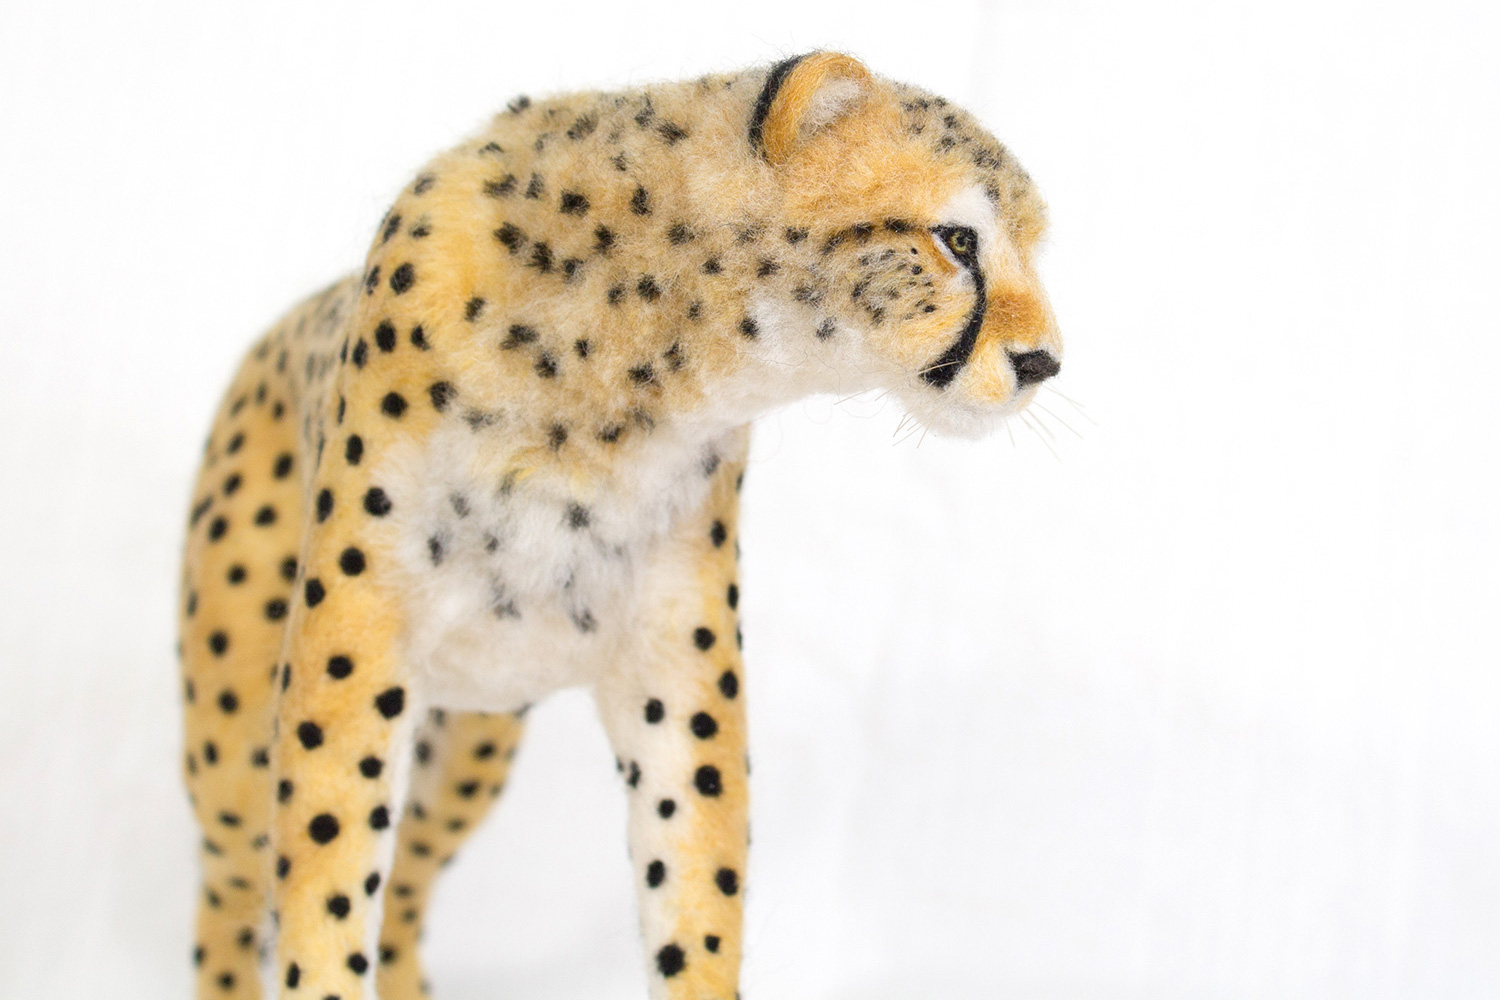 needle-felt-cat-sculpture-12.jpg